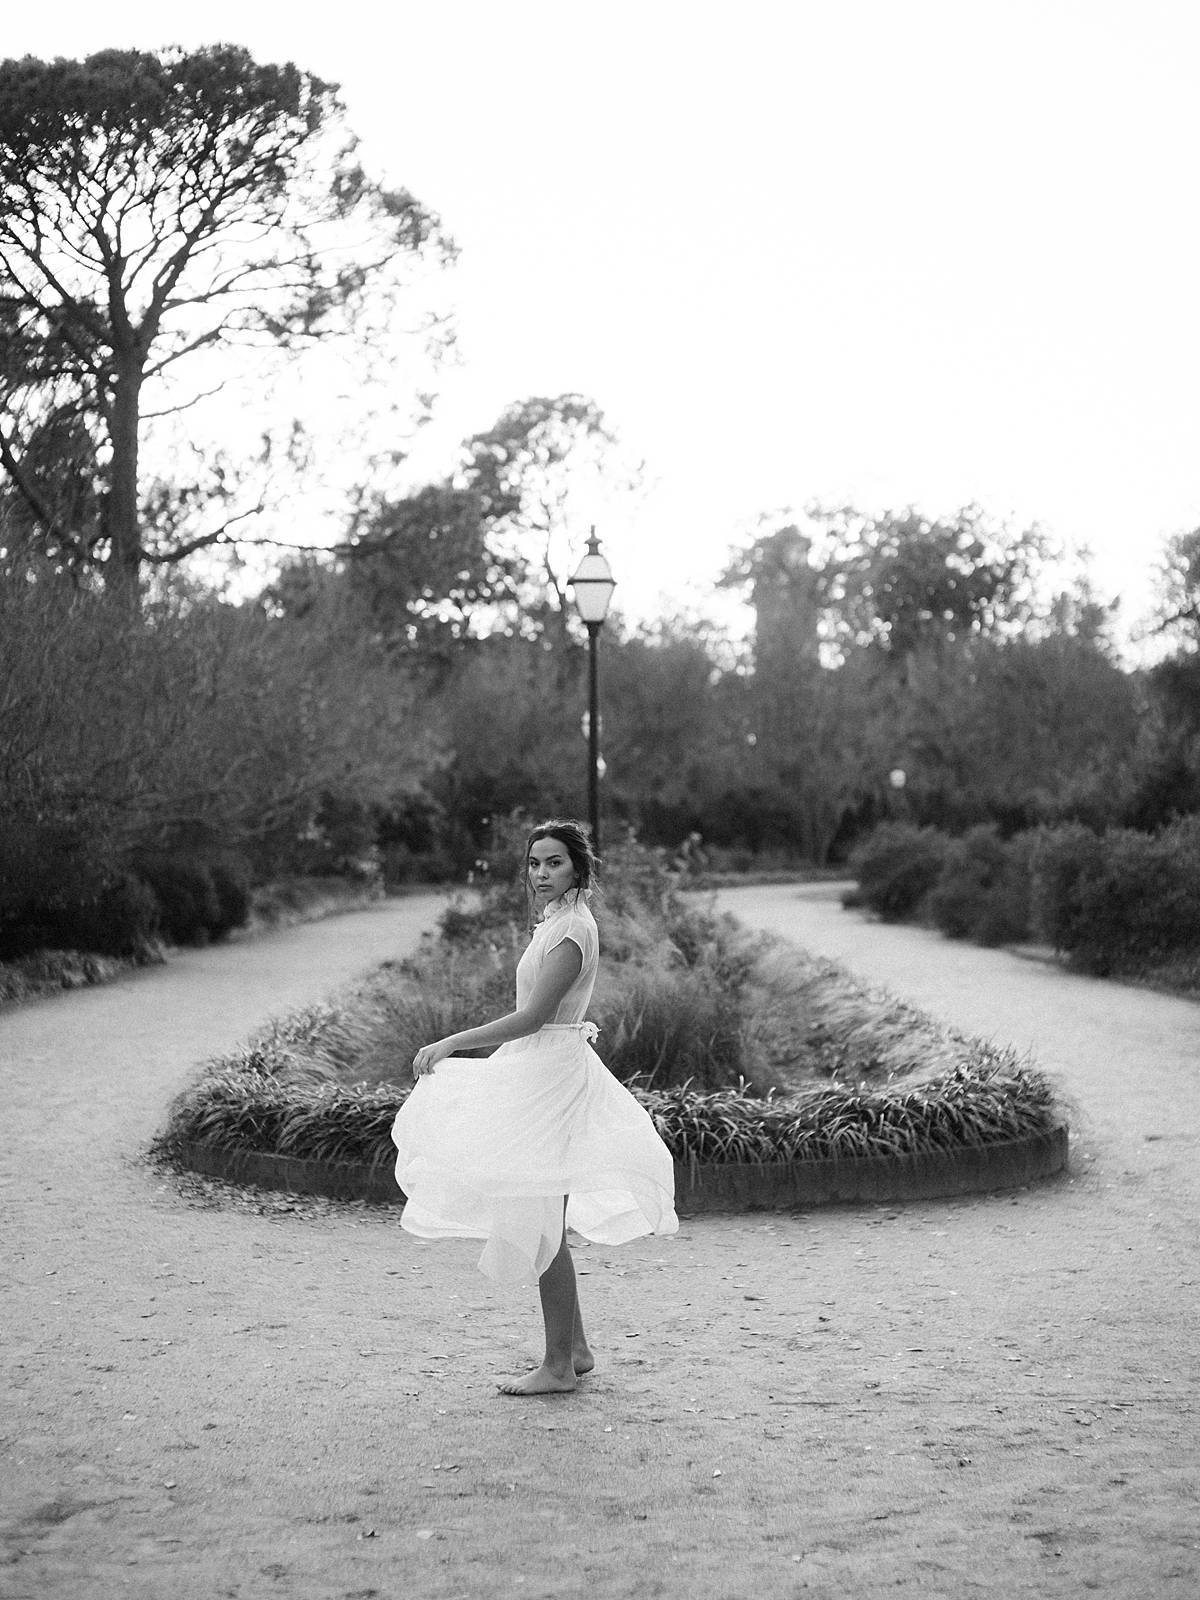 1911 paulina hampton park charleston fall portraits sony leica 00056_web